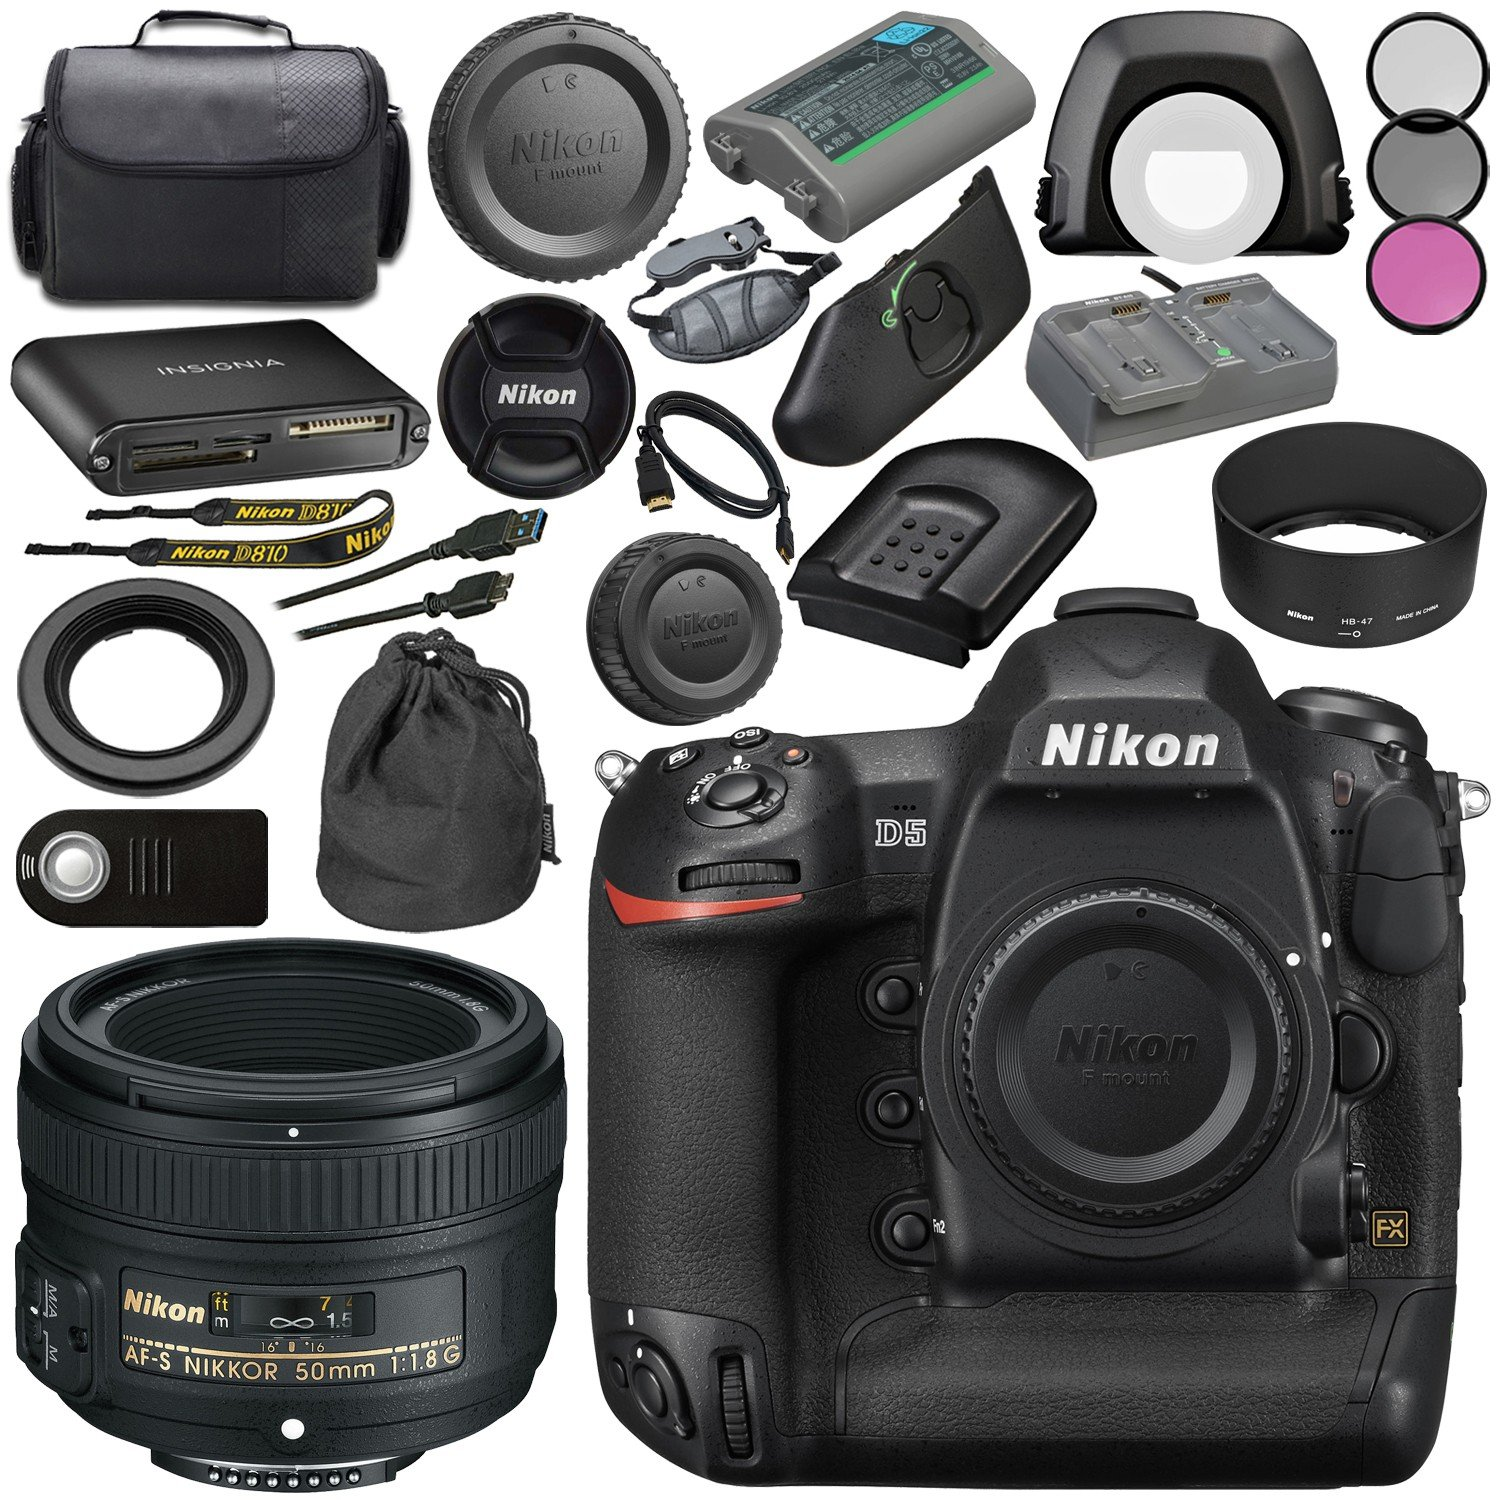 Nikon D5 DSLR Camera (Dual CF Slots) #1558 + Nikon AF-S 50mm f/1.8G Lens 2199 + 58mm 3 Piece Filter Kit + Mini HDMI Cable + Carrying Case + Multi Purpose USB card Reader + Hand Strap Bundle